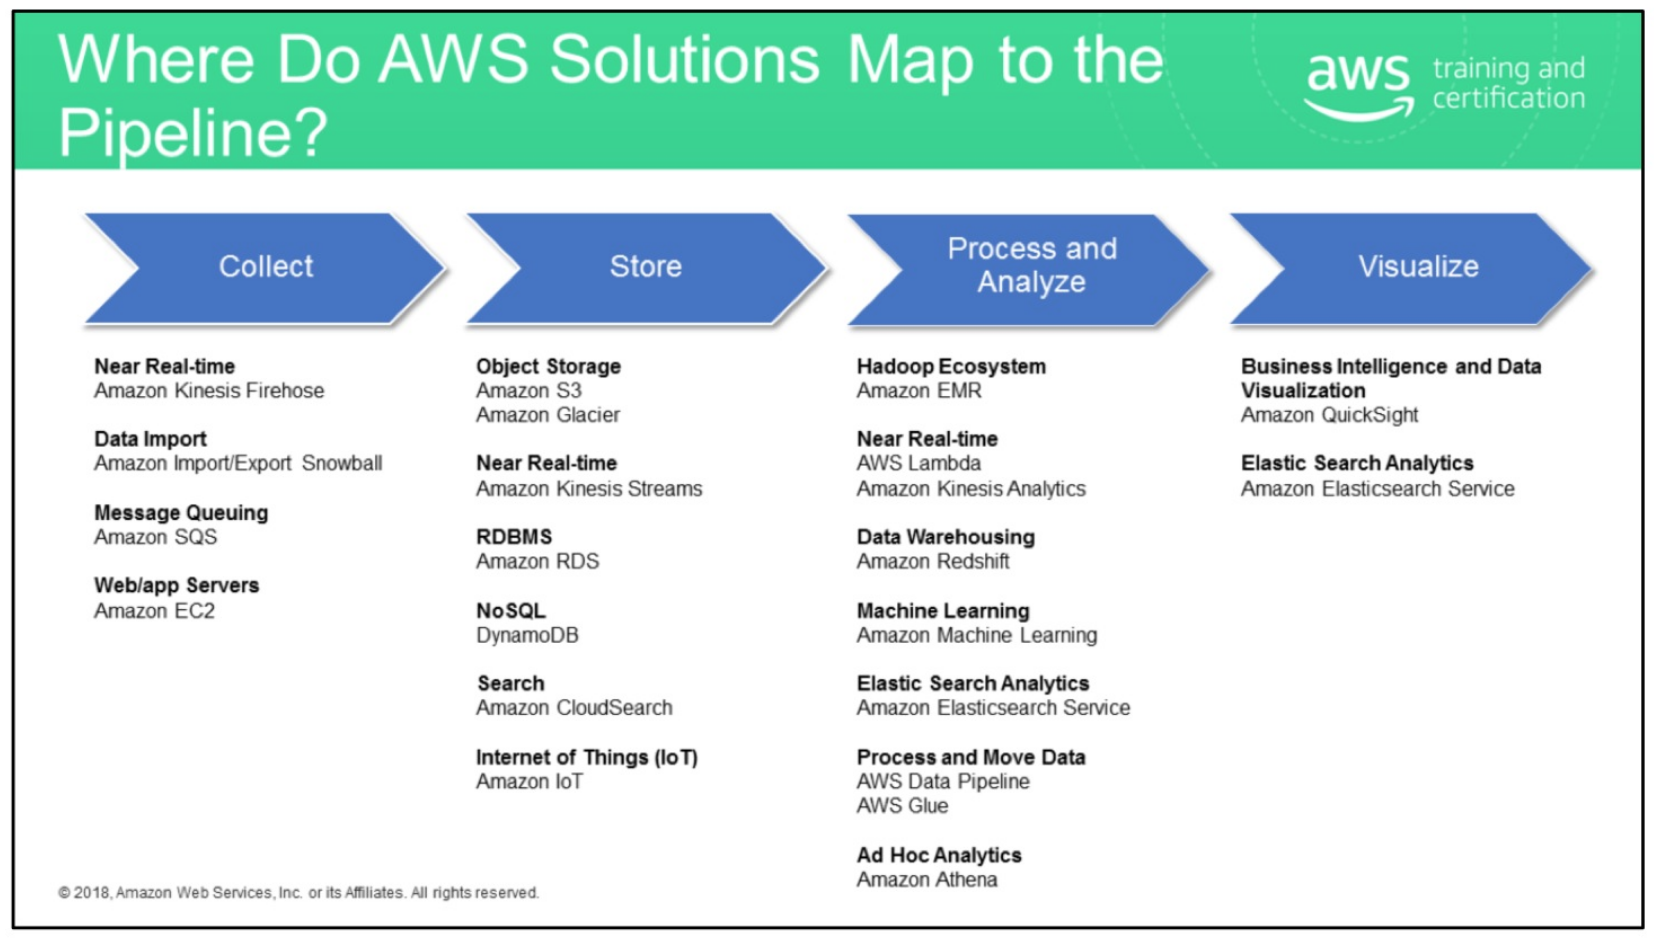 aws-productline-for-big-data-pipeline